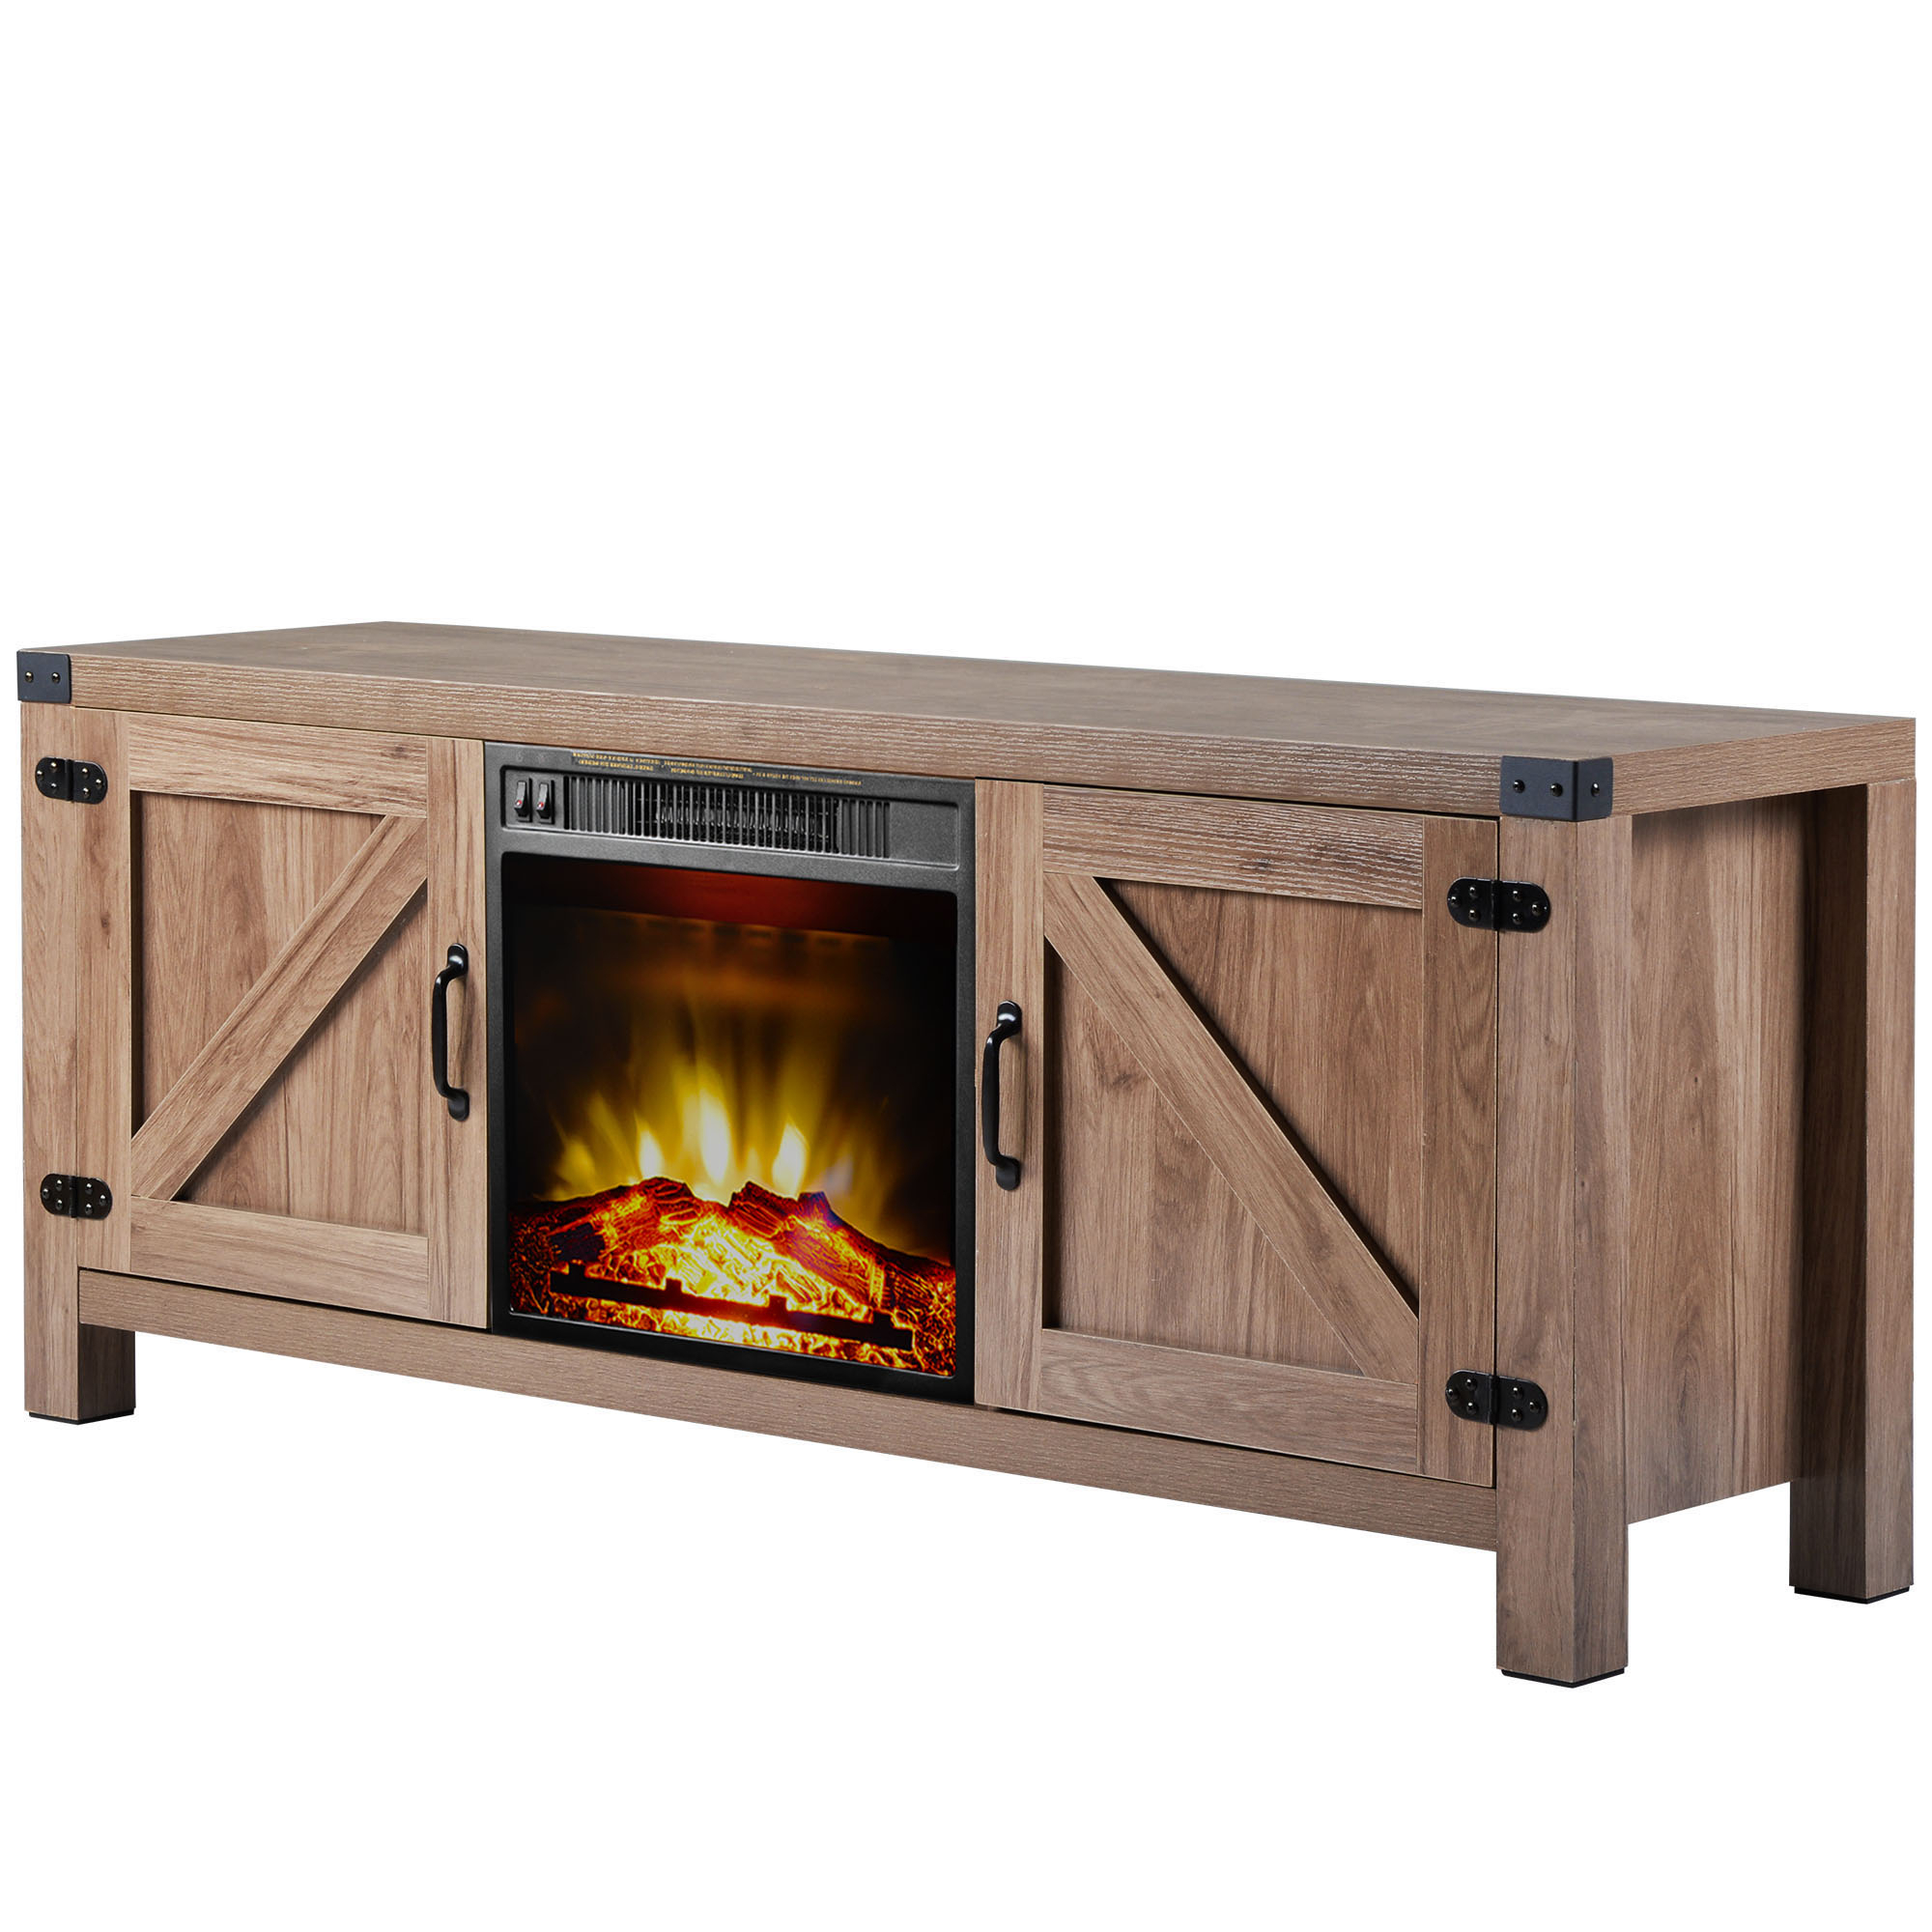 """Segmart Fireplace Tv Stands For Tvs Up To 65"""", Rustic For Well Liked Totally Tv Stands For Tvs Up To 65"""" (View 10 of 25)"""